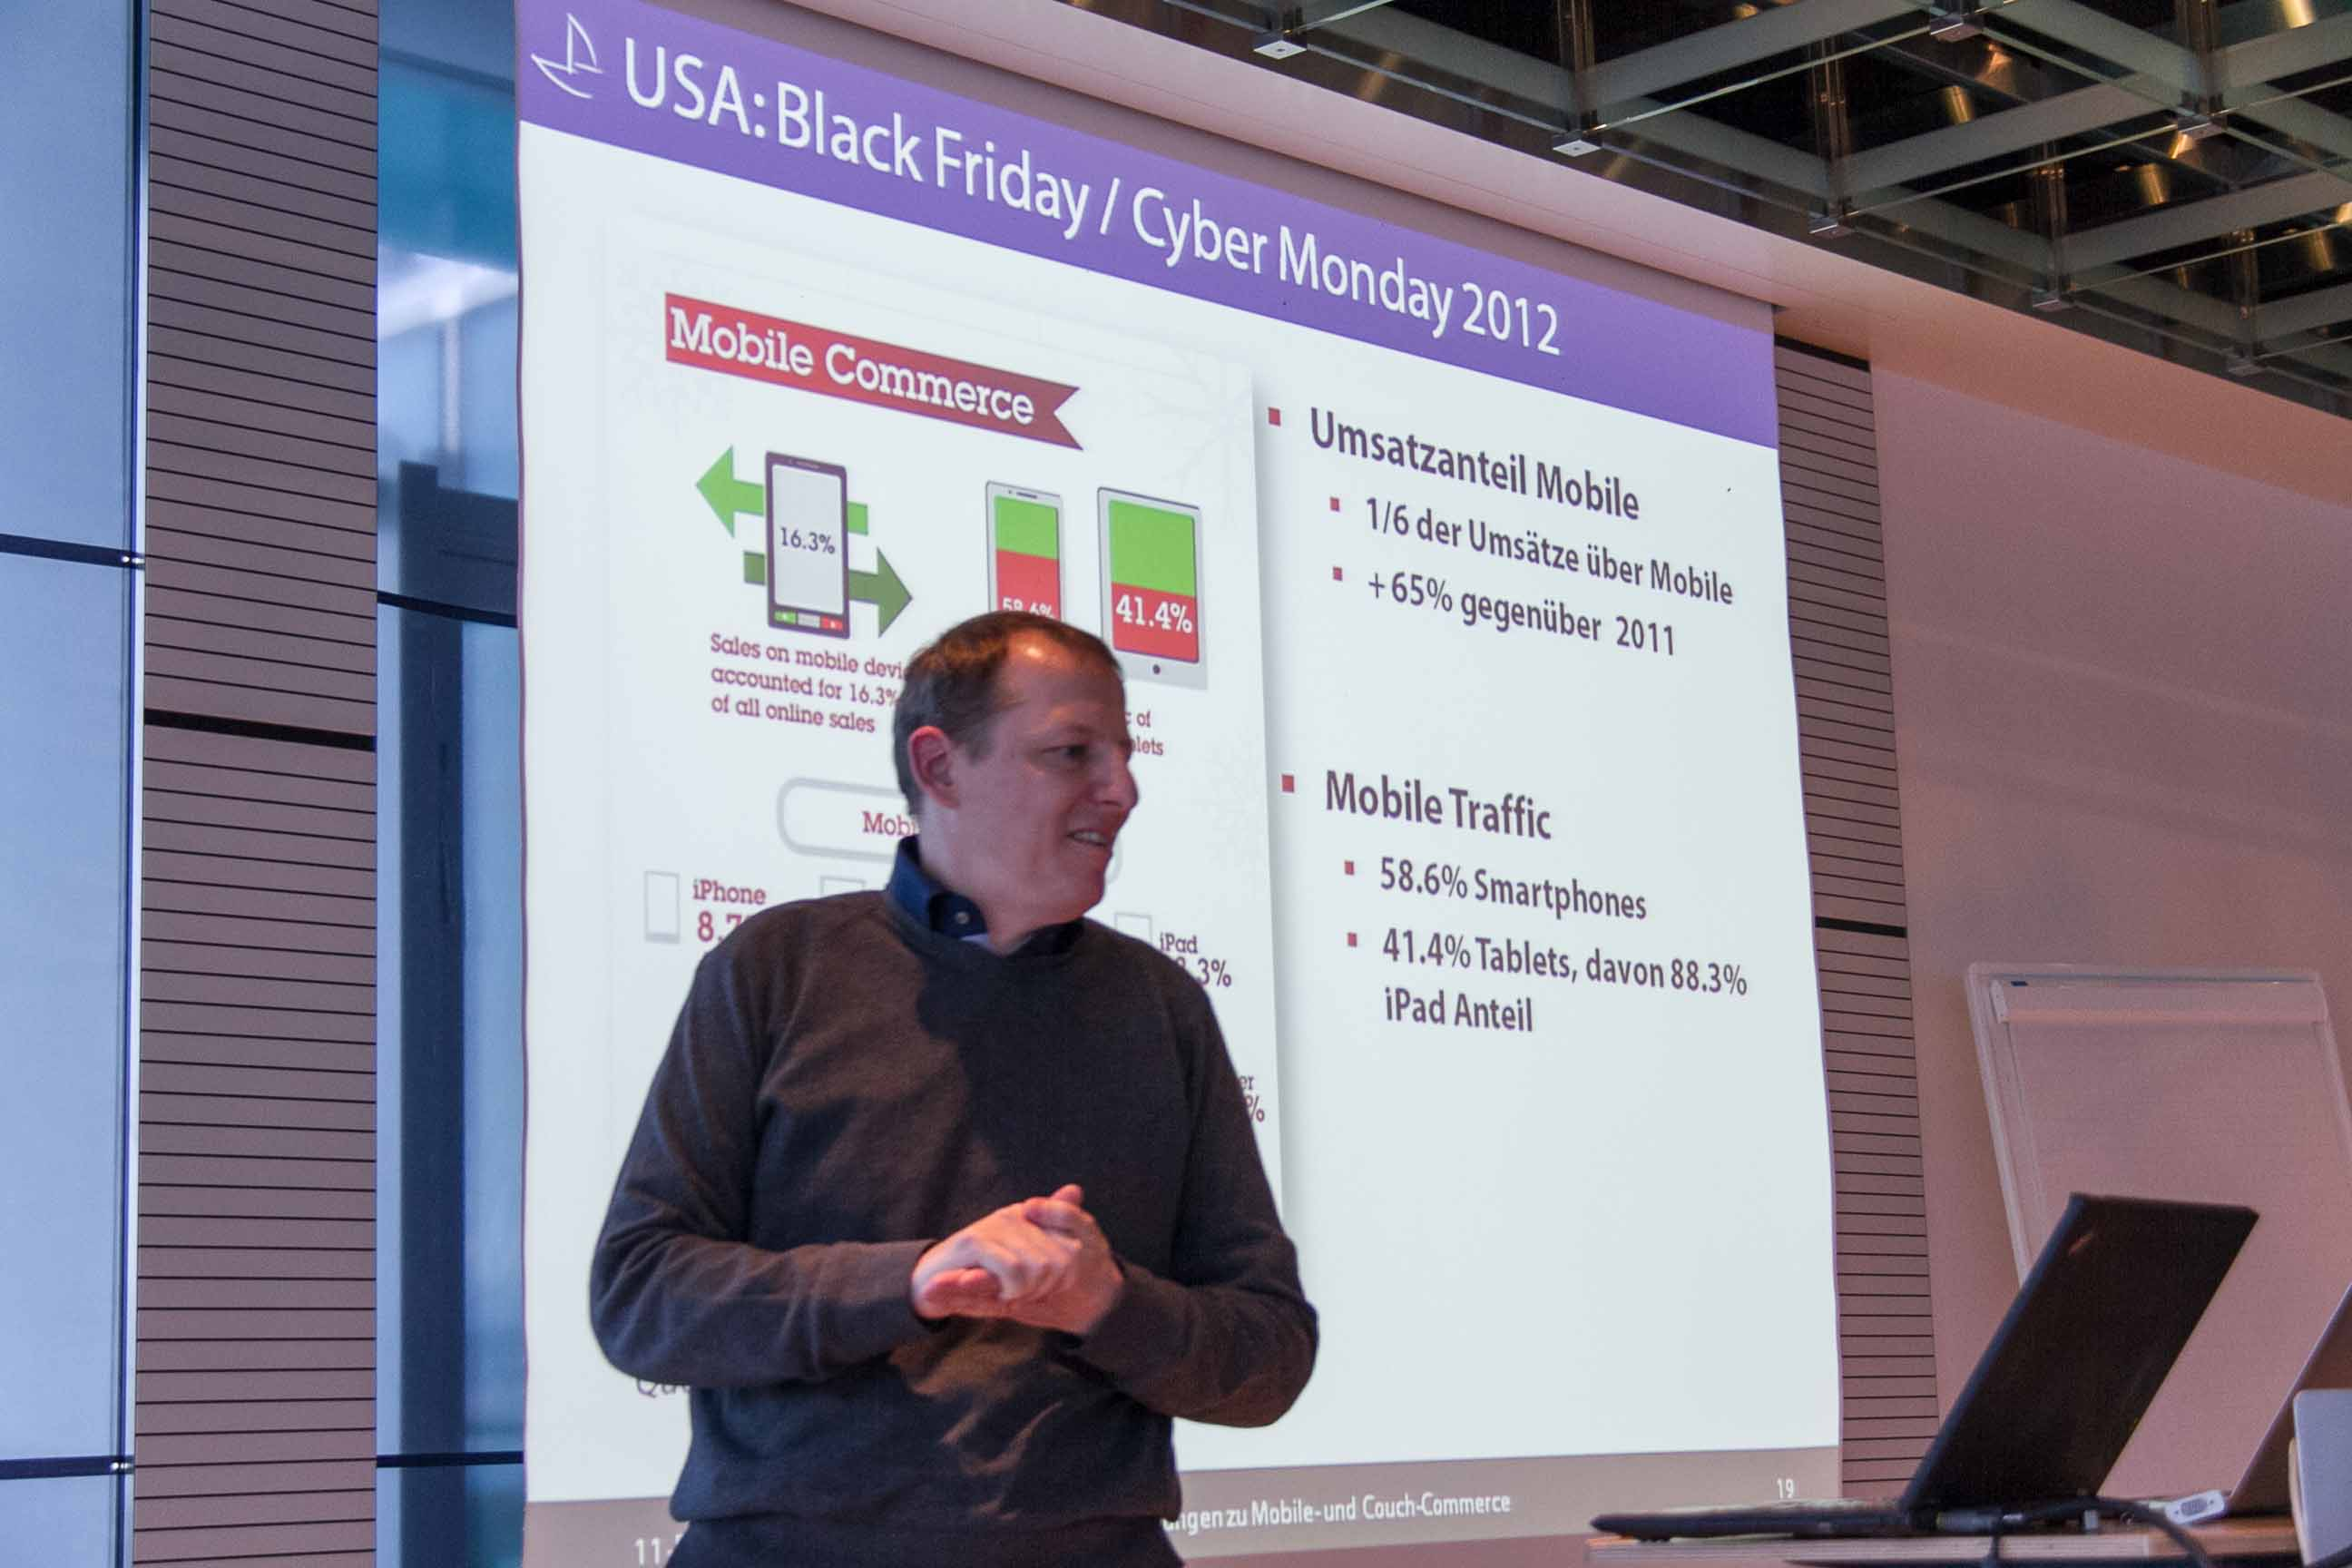 Mobile Commerce am Cyber Monday 2012